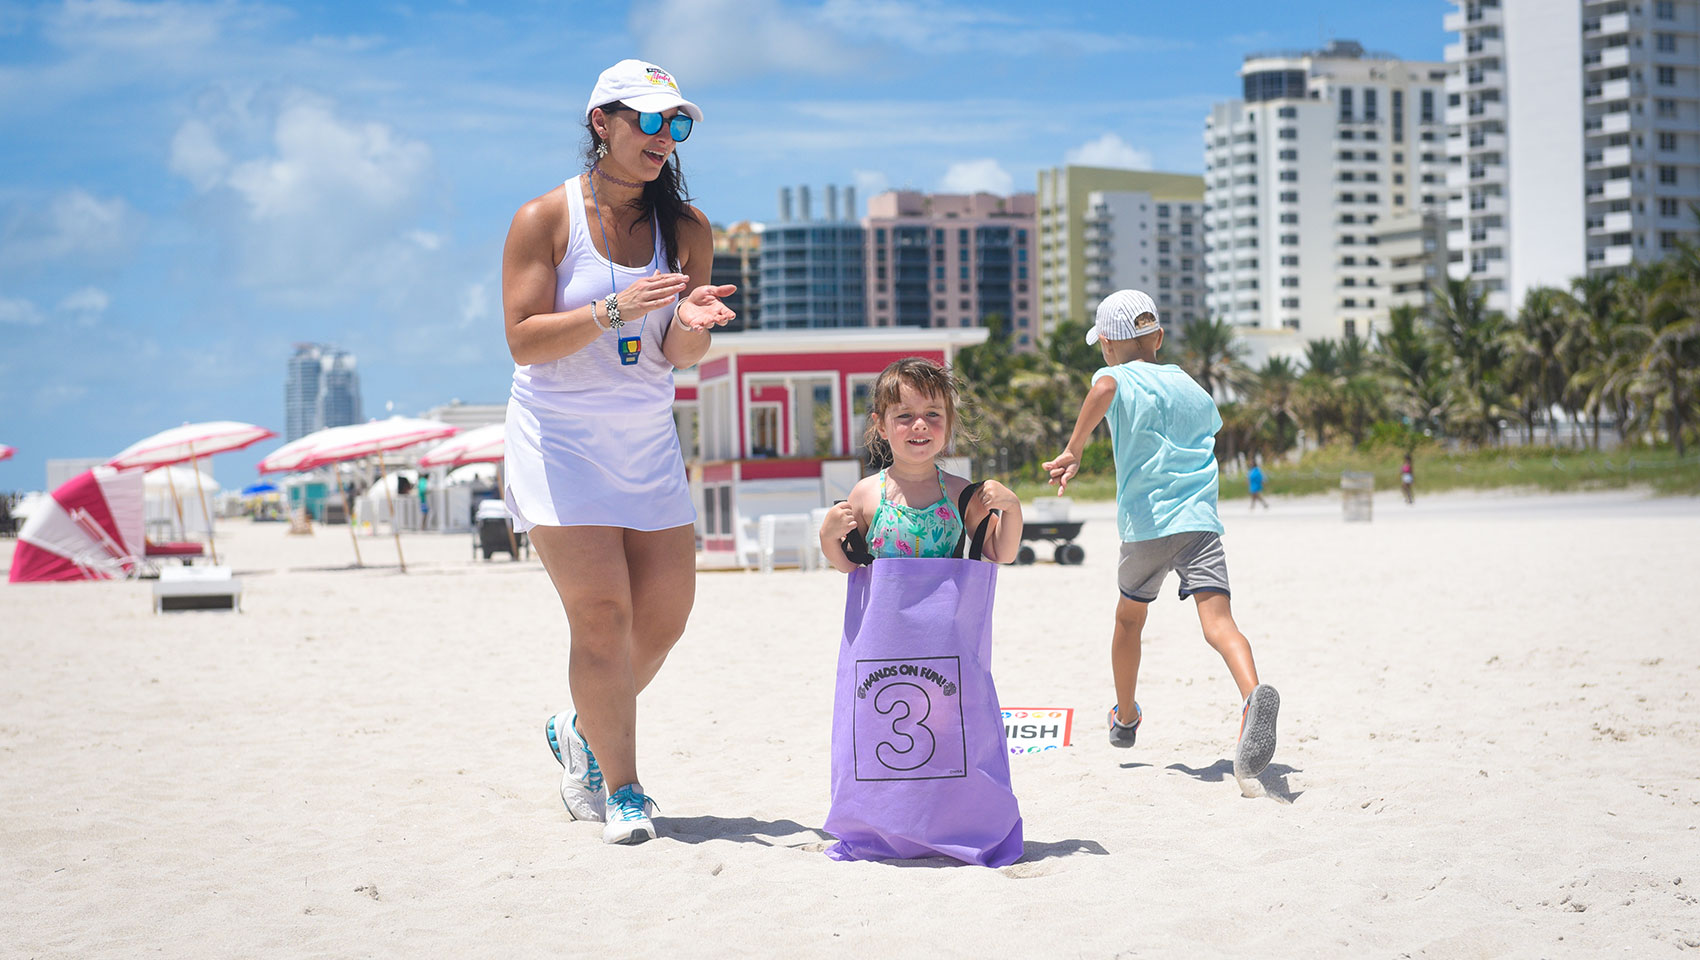 beach kids sack race led by Surfcomber DAYLIFE instructor